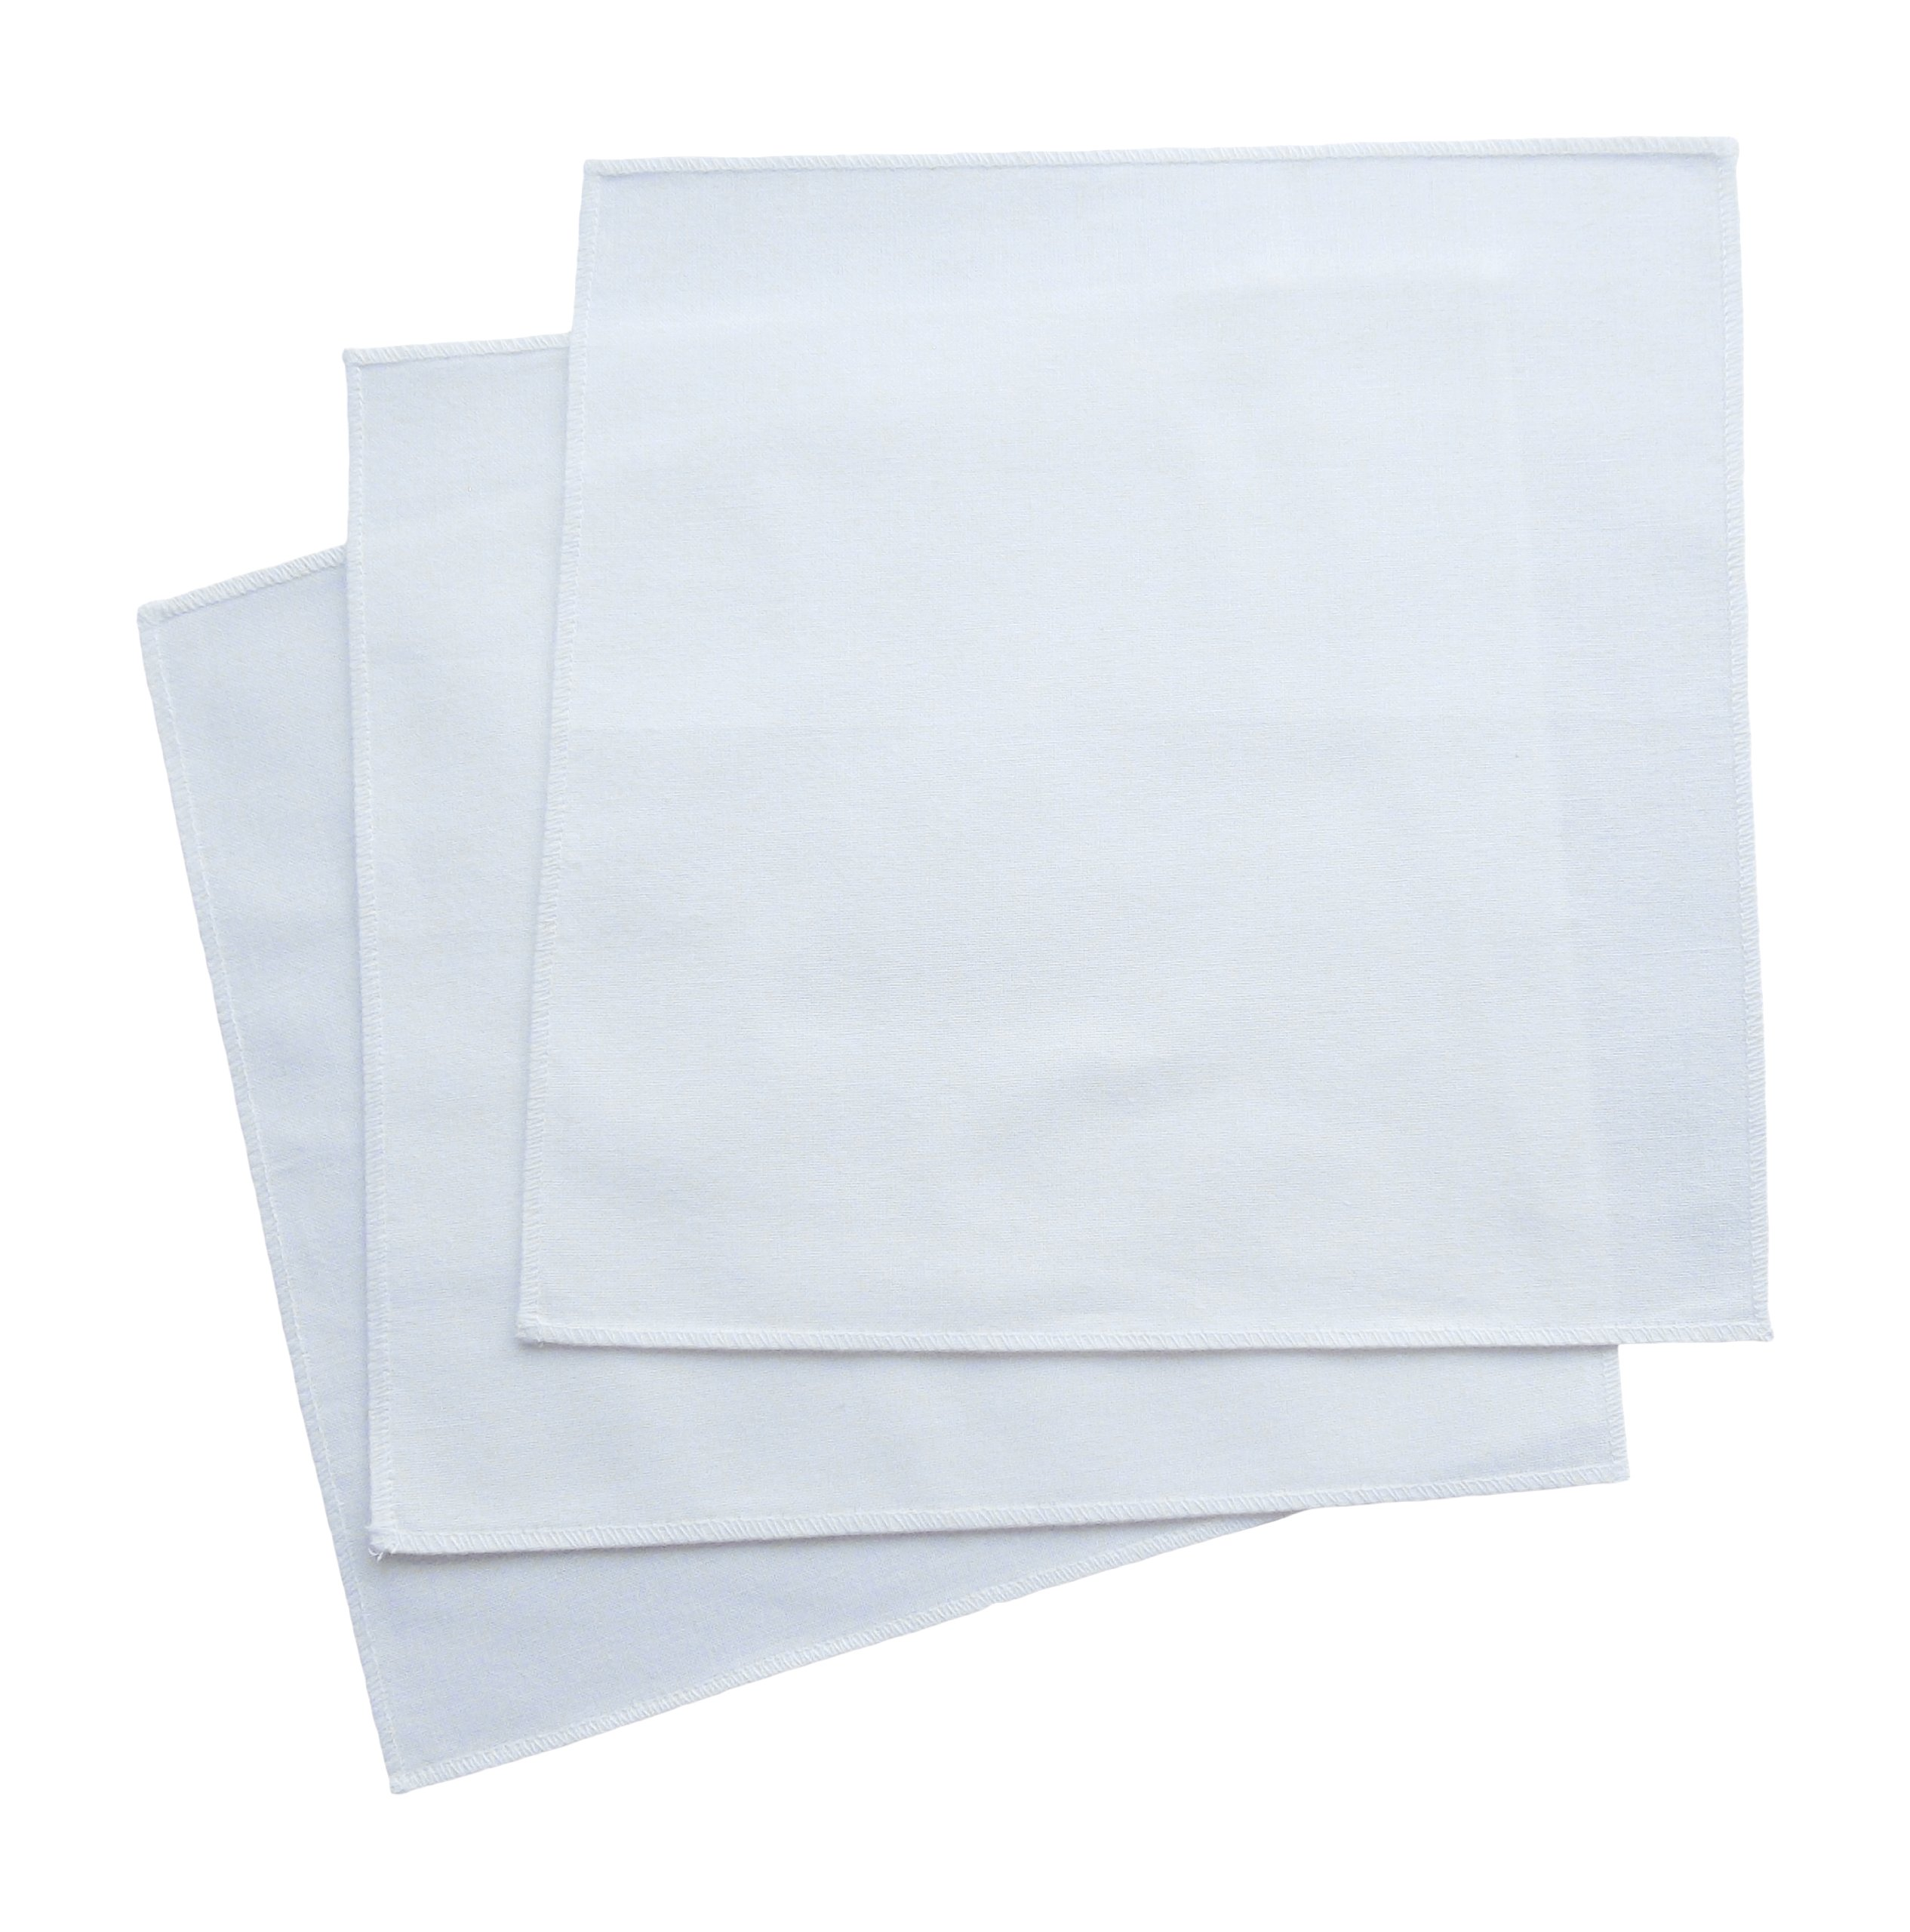 "Organic Handkerchiefs Womens Cotton Set - 8"" small white hankies 3 pk Made in US by The Organic Handkerchiefs Company (Image #1)"